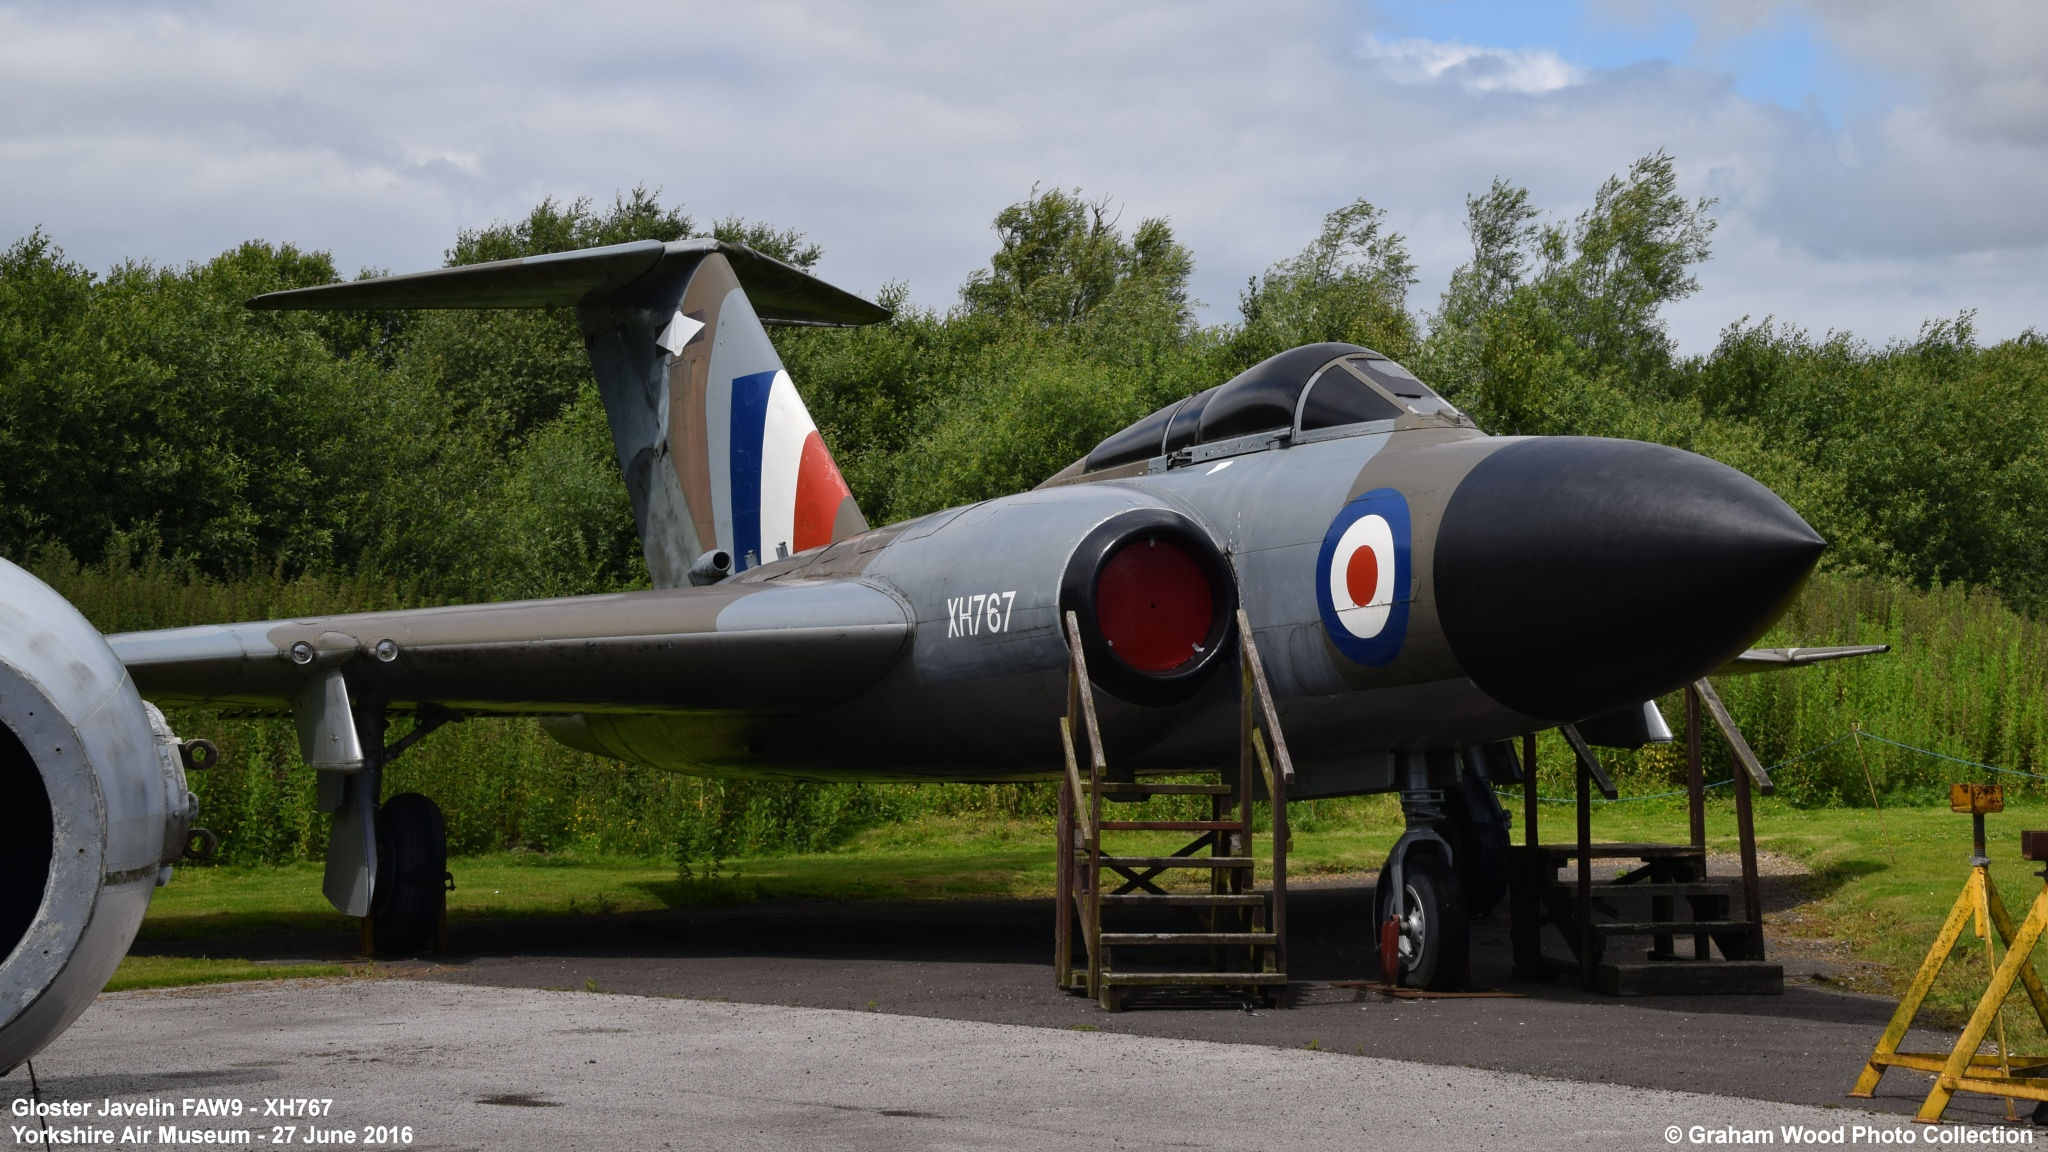 Gloster Javelin FAW9 - XH767 by Graham Wood Photo Collection